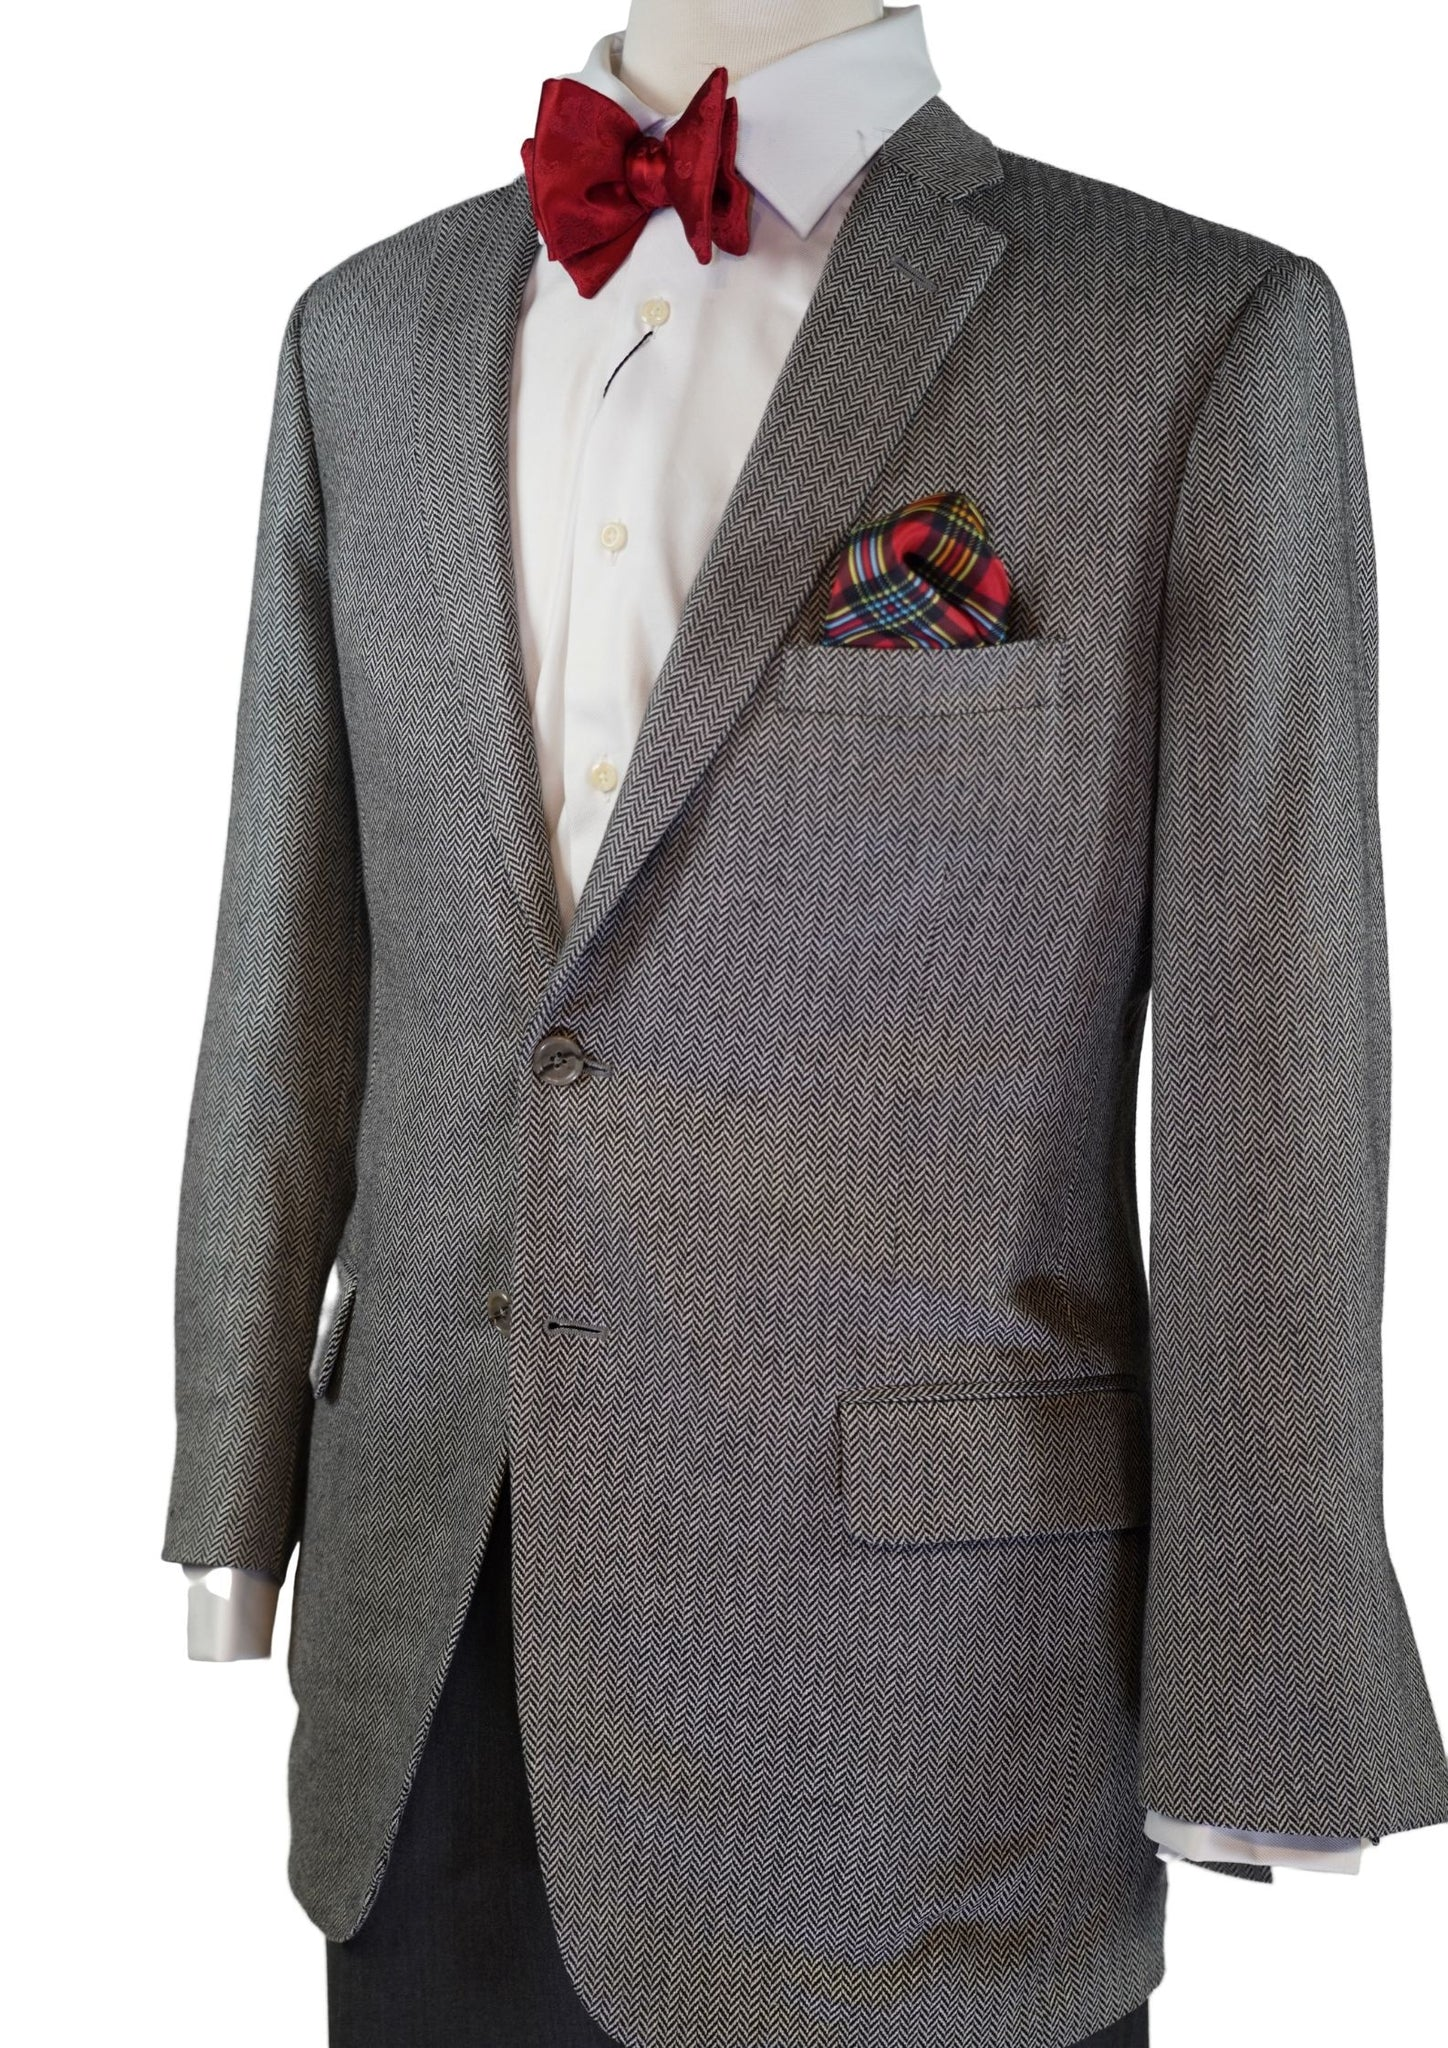 BLACK & WHITE HERRING BONE SPORT COAT